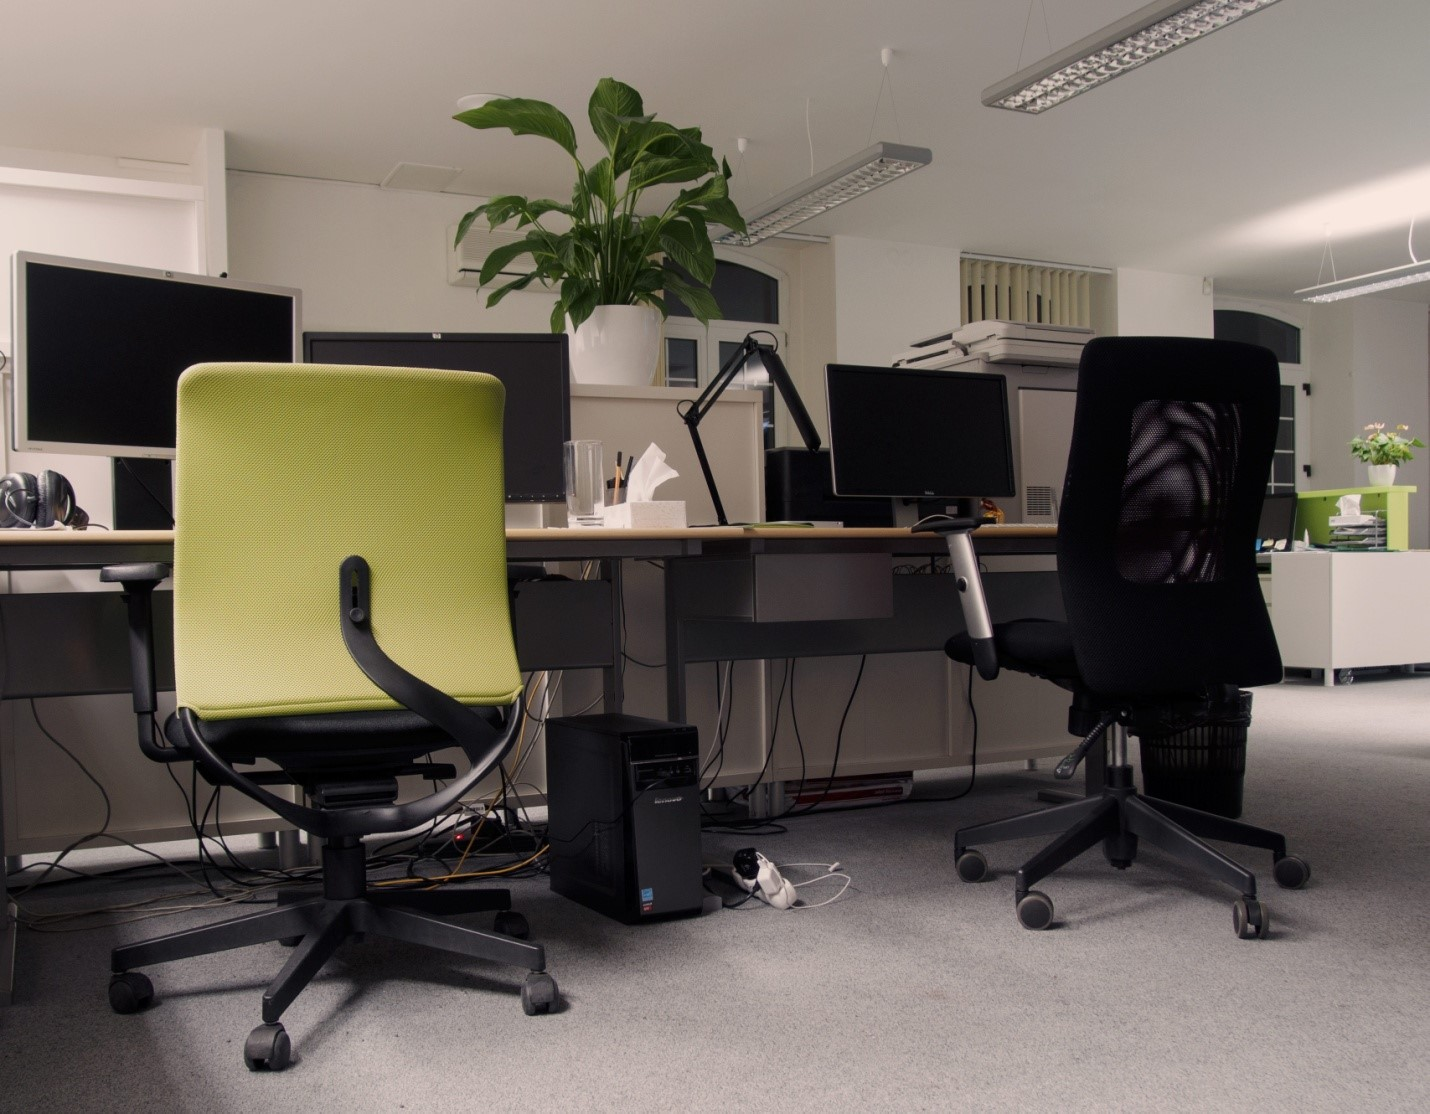 Five ways to impress visitors to your office